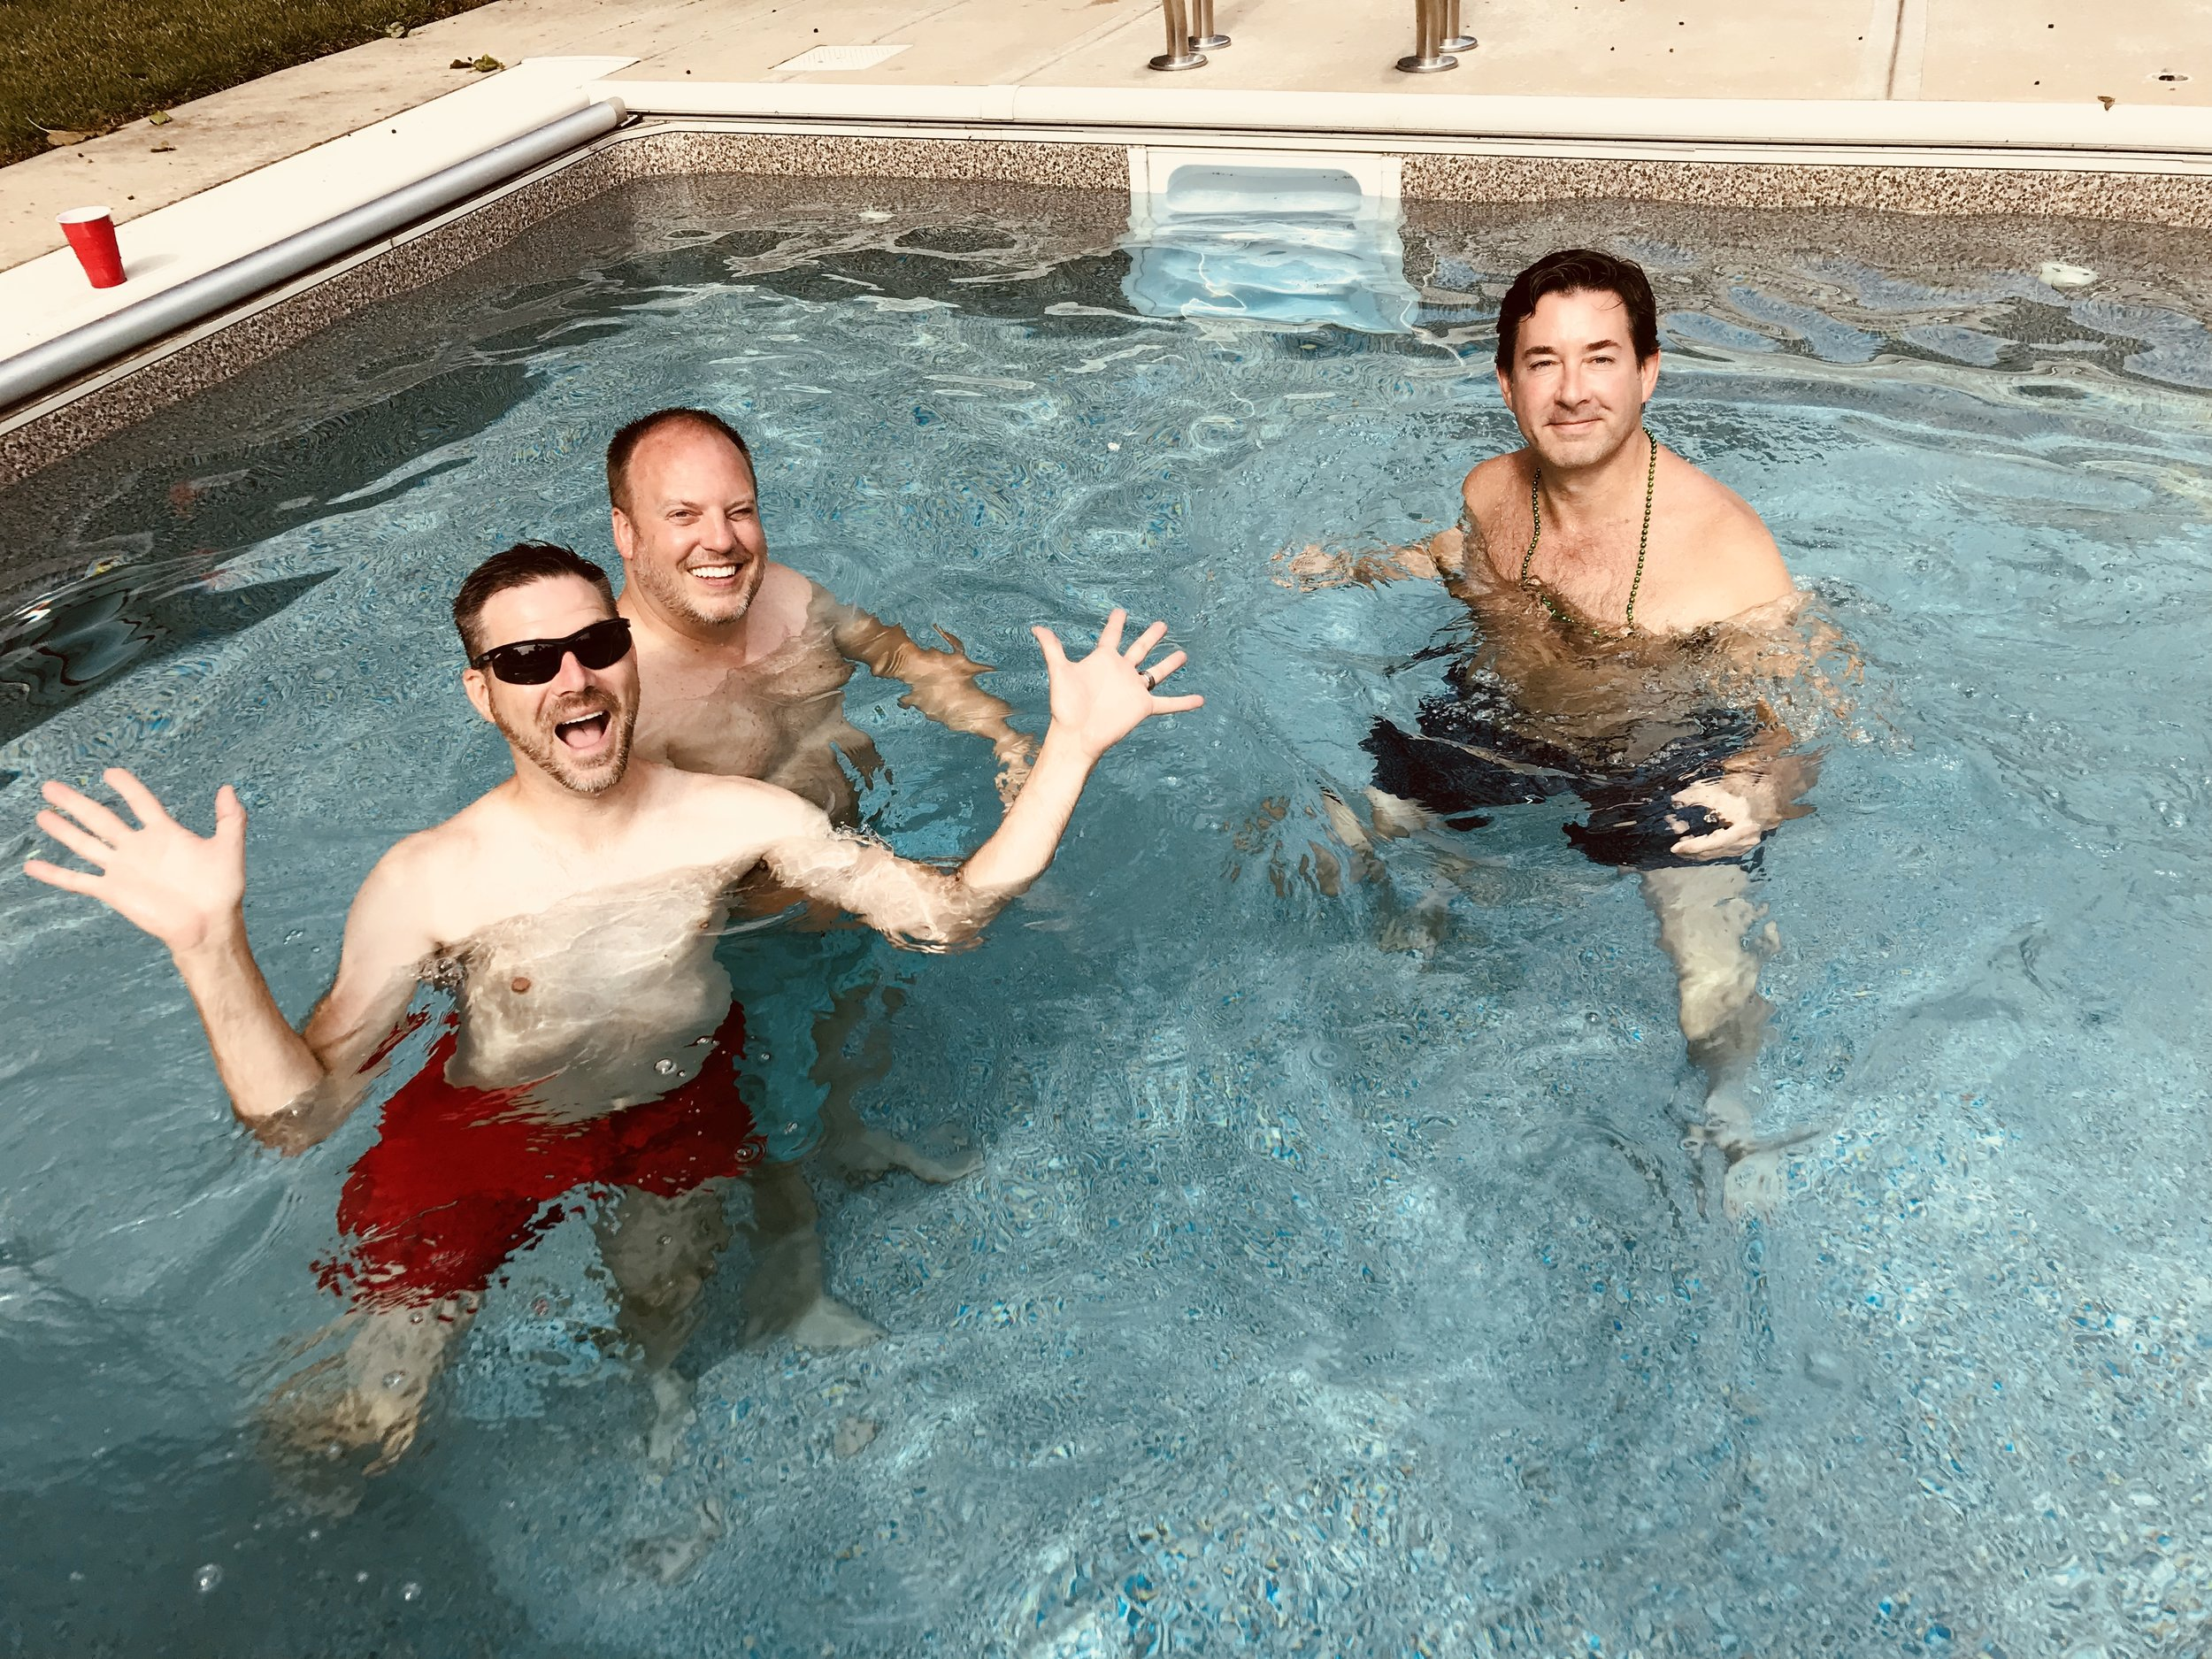 Post Parade Pooltime